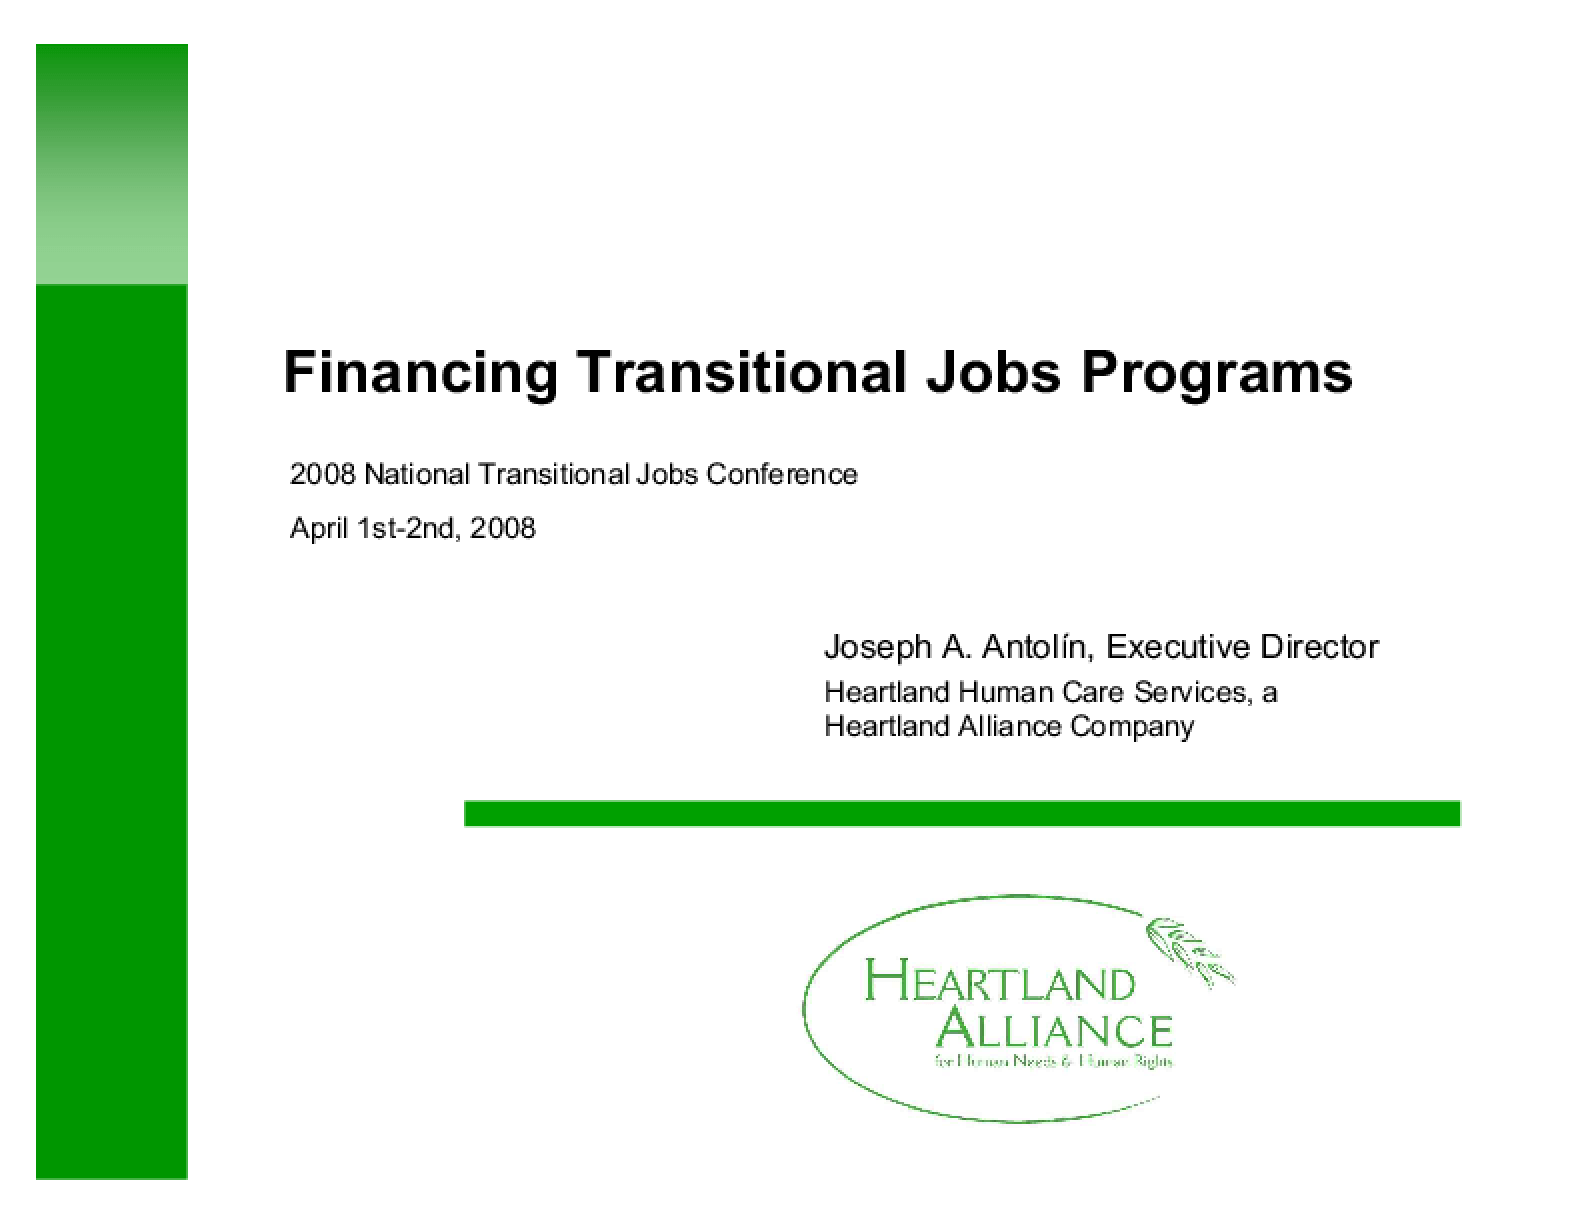 Financing Transitional Jobs Programs